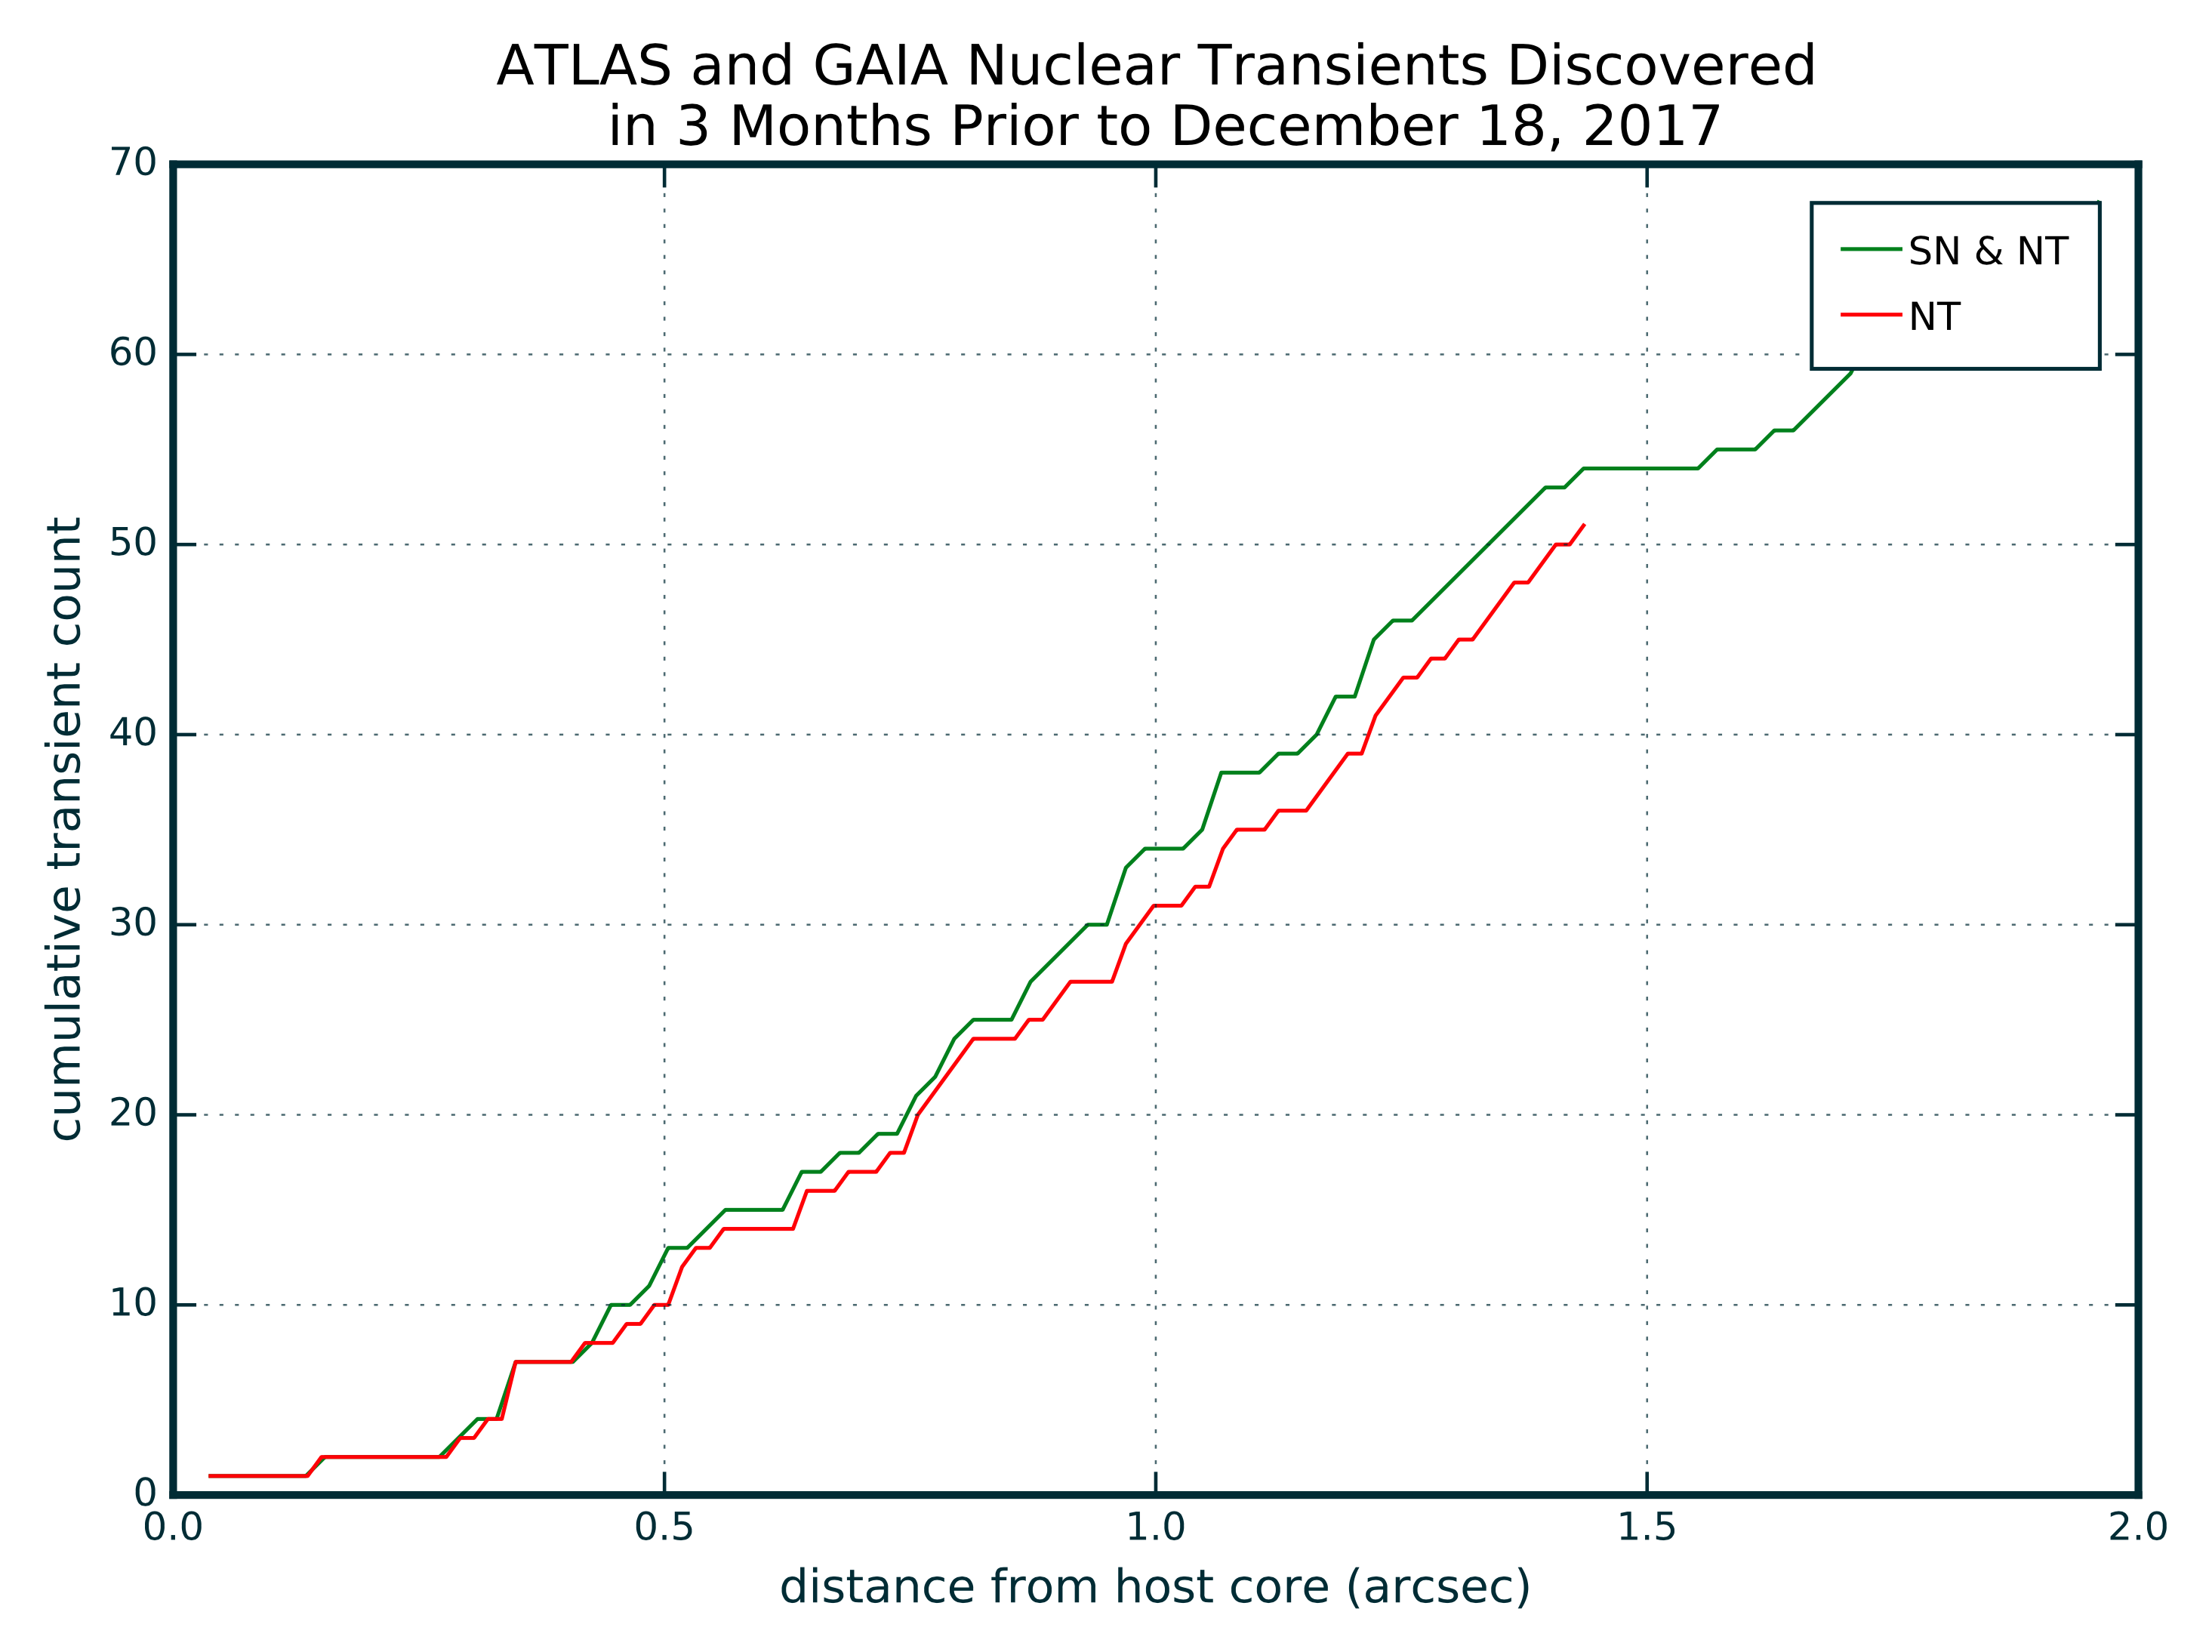 ATLAS and GAIA NTs with host distance